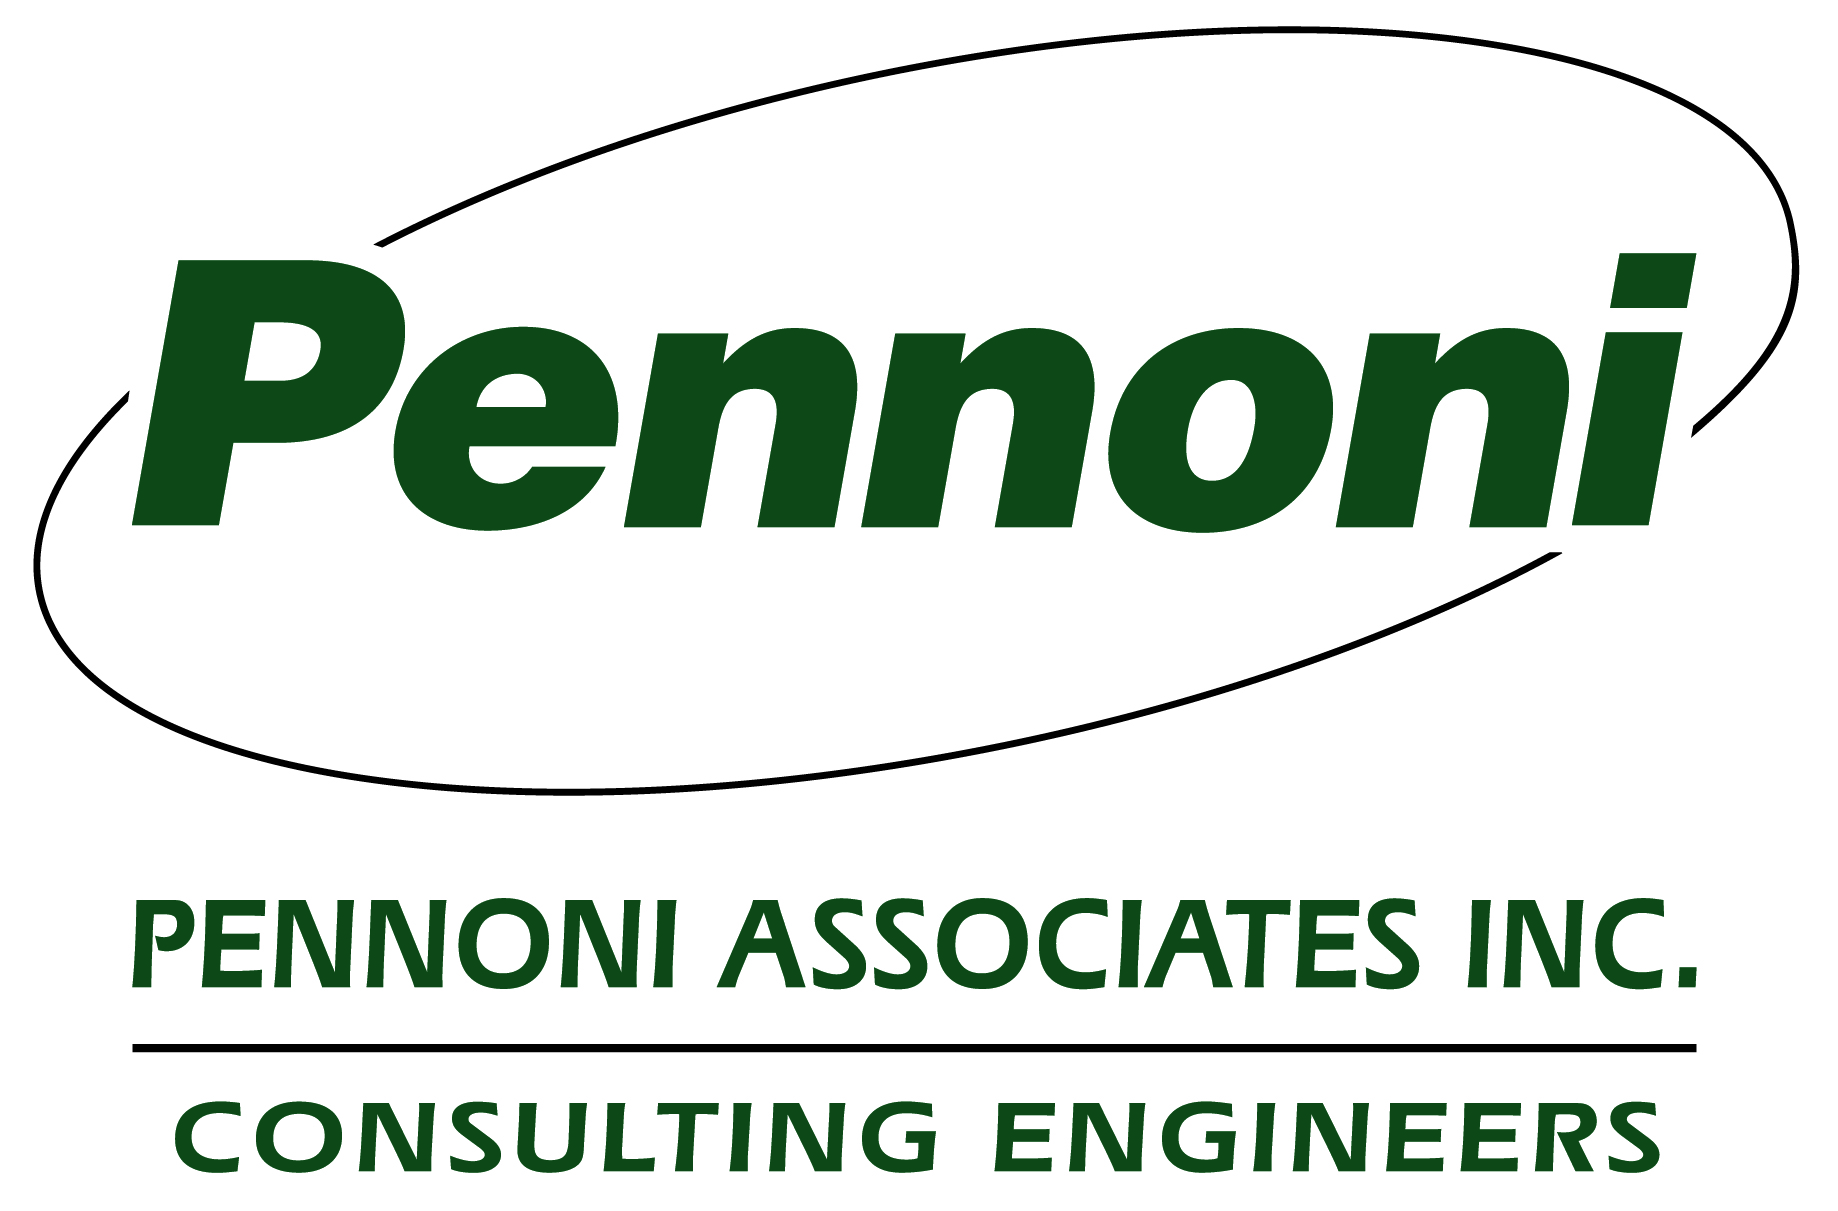 Pennoni_Logo_with_Text.jpg